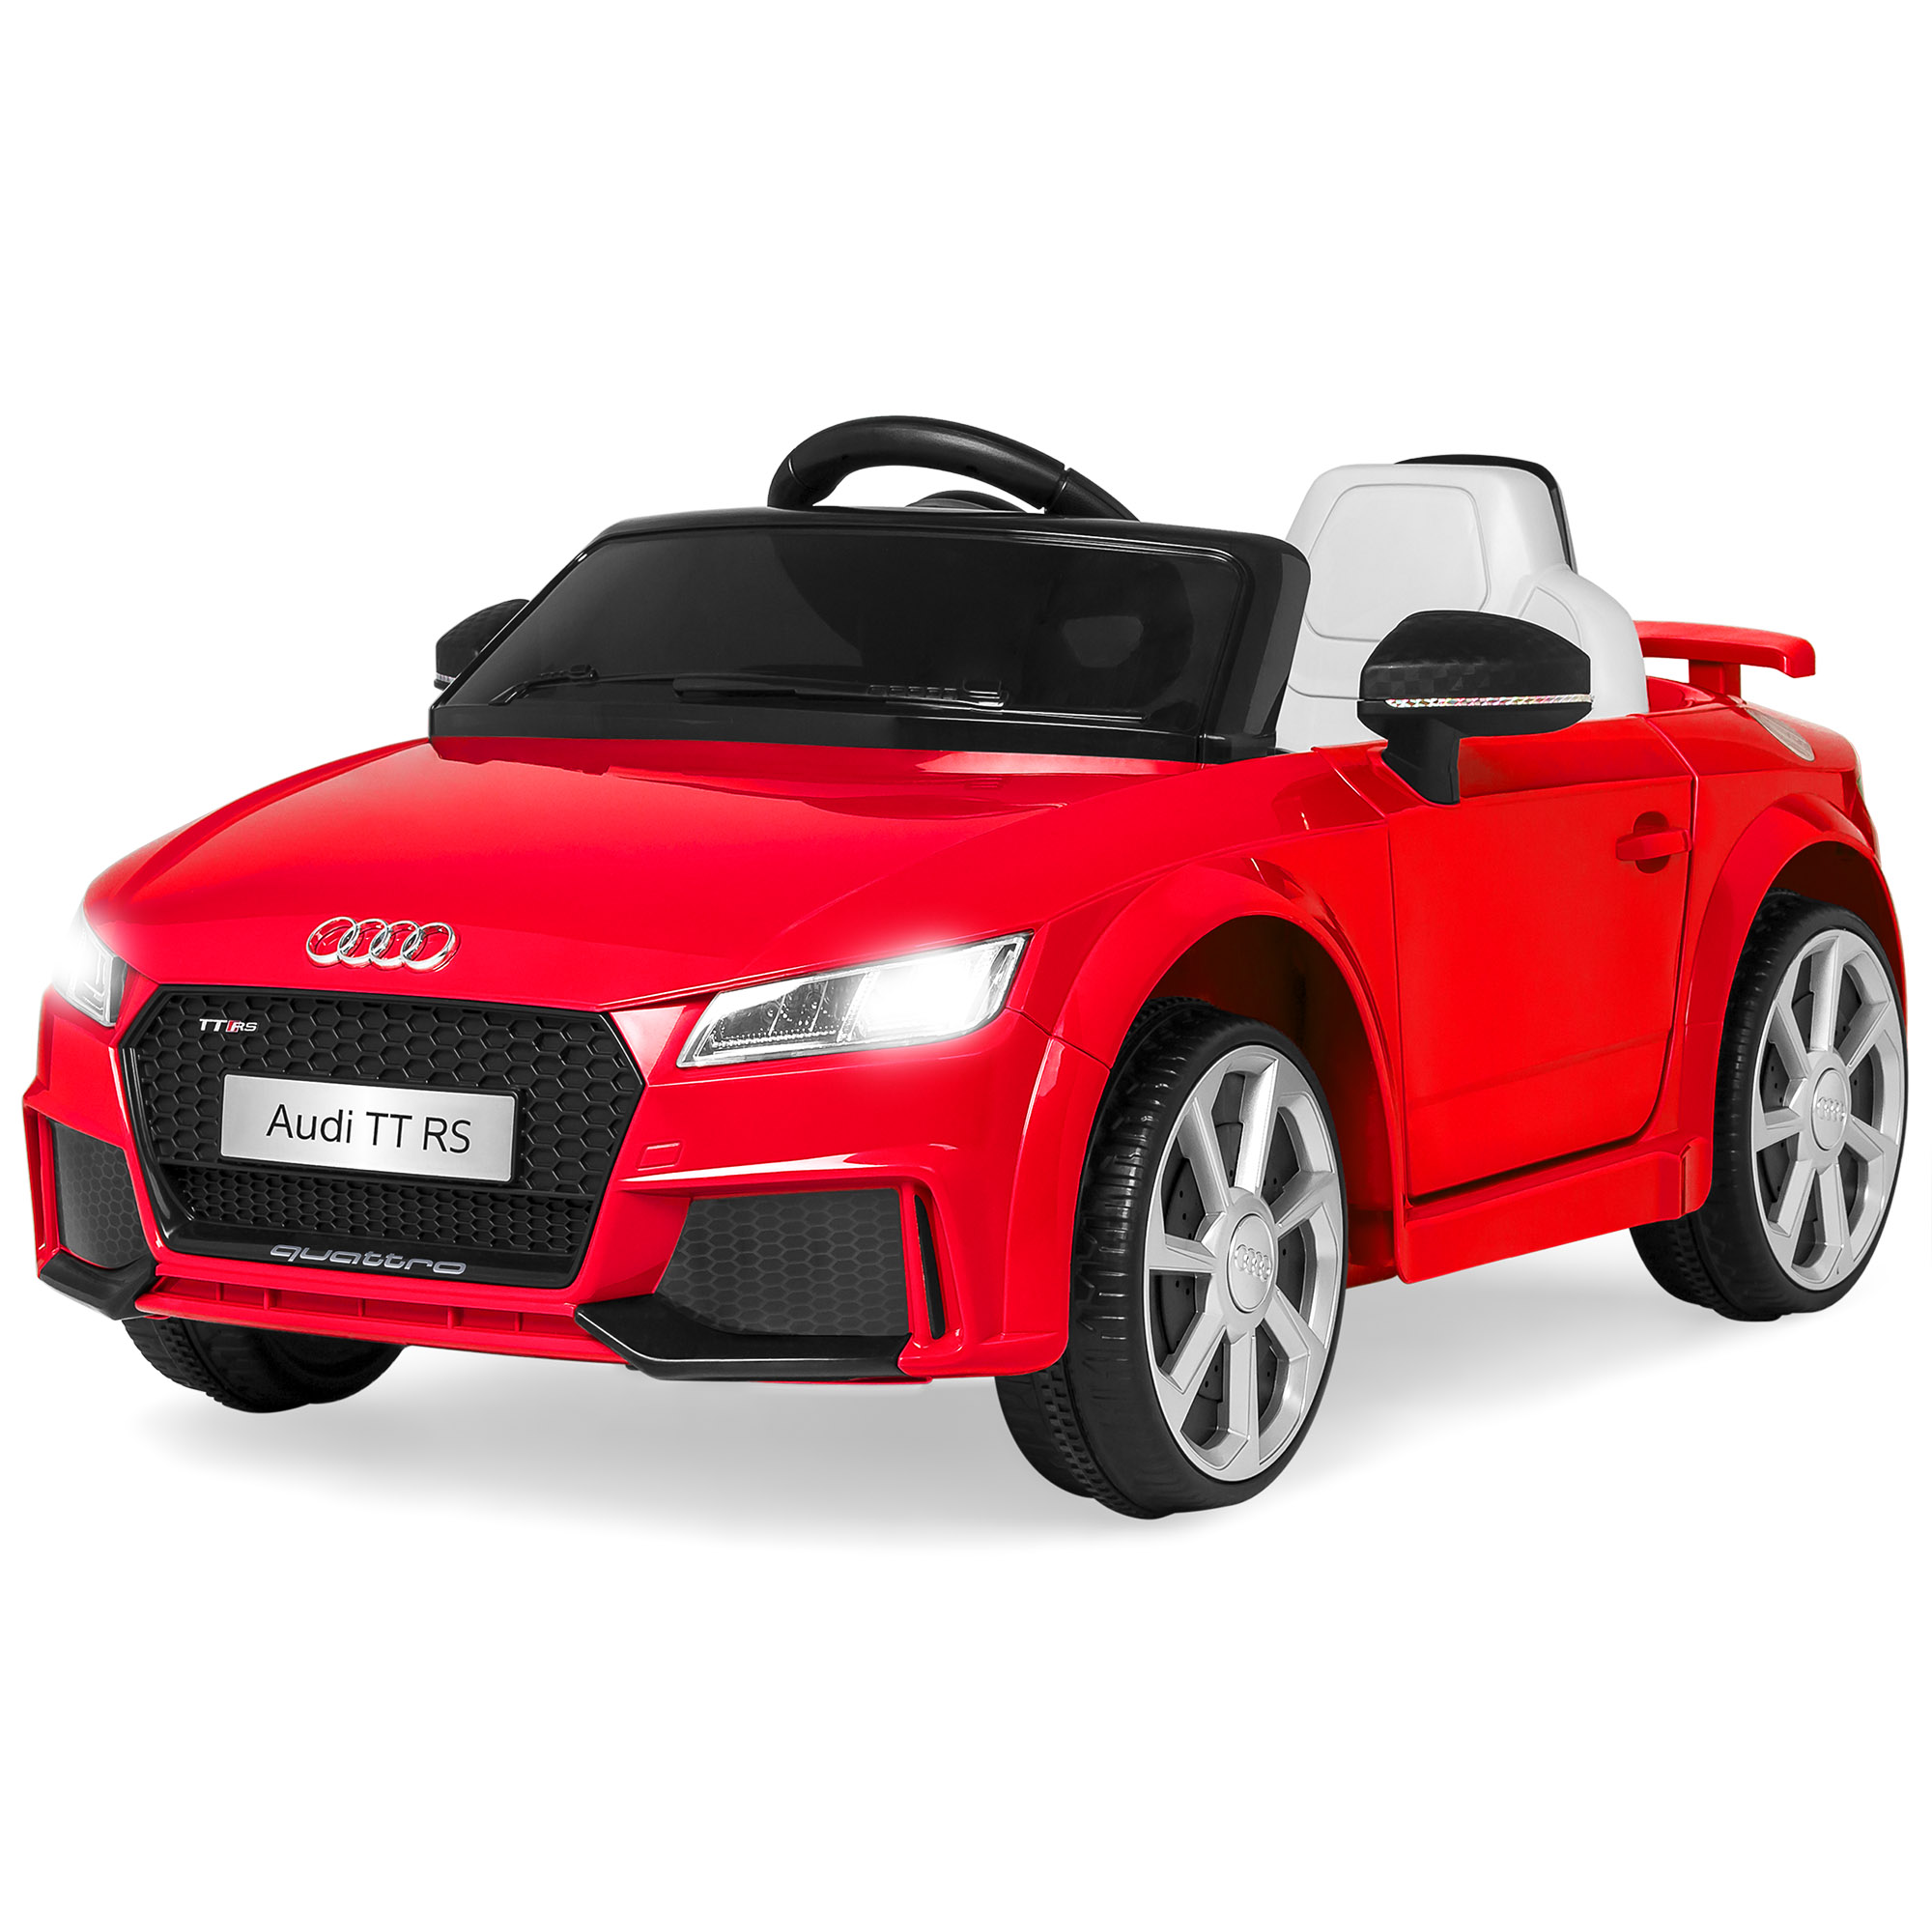 Best Choice Products 6V Kids Audi TT RS Ride On Car w/ Parent Control, 2 Speeds, Suspension, AUX Input